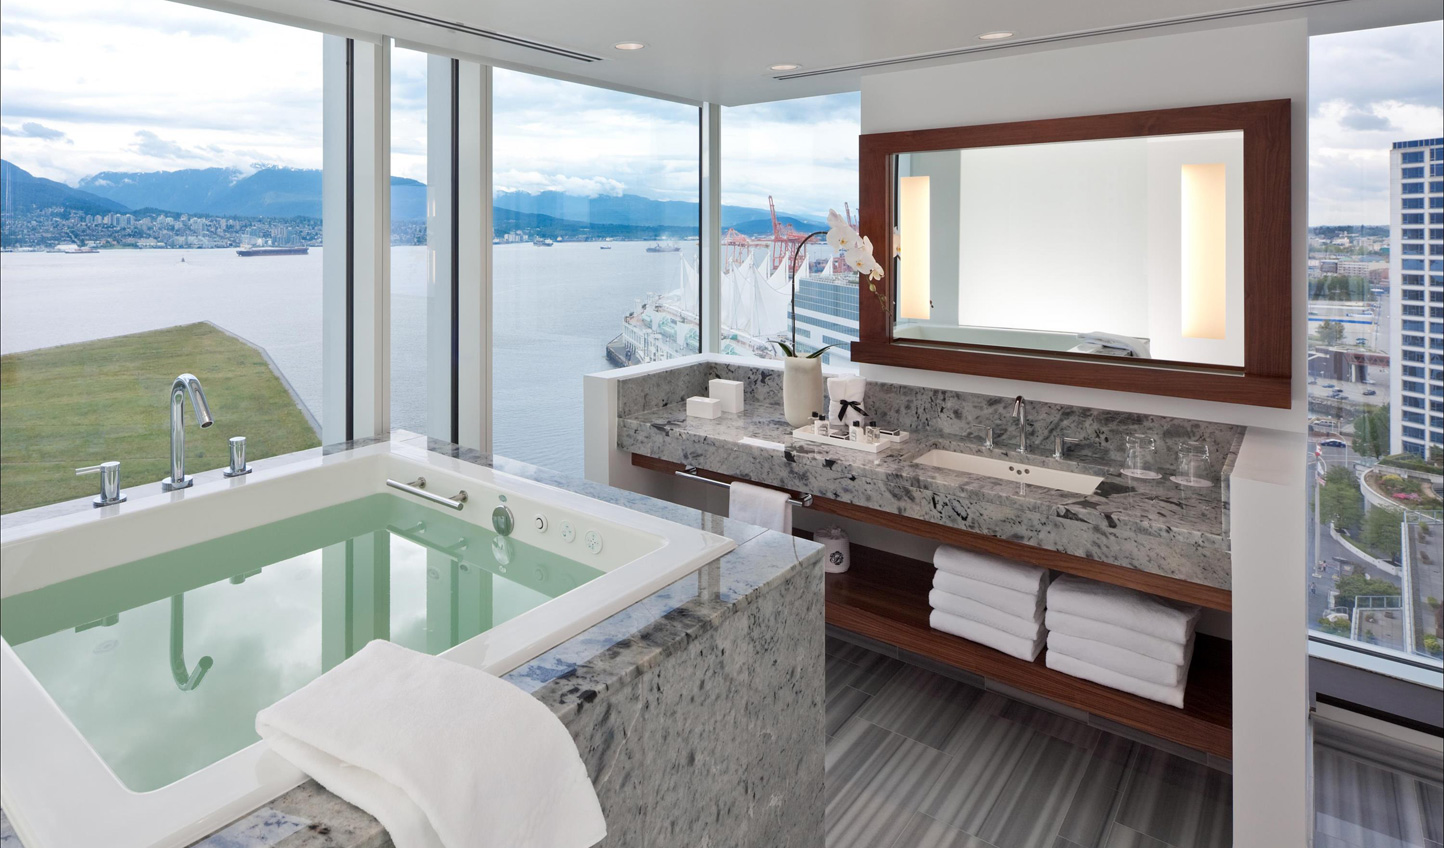 Sink into a sumptuous bathtub